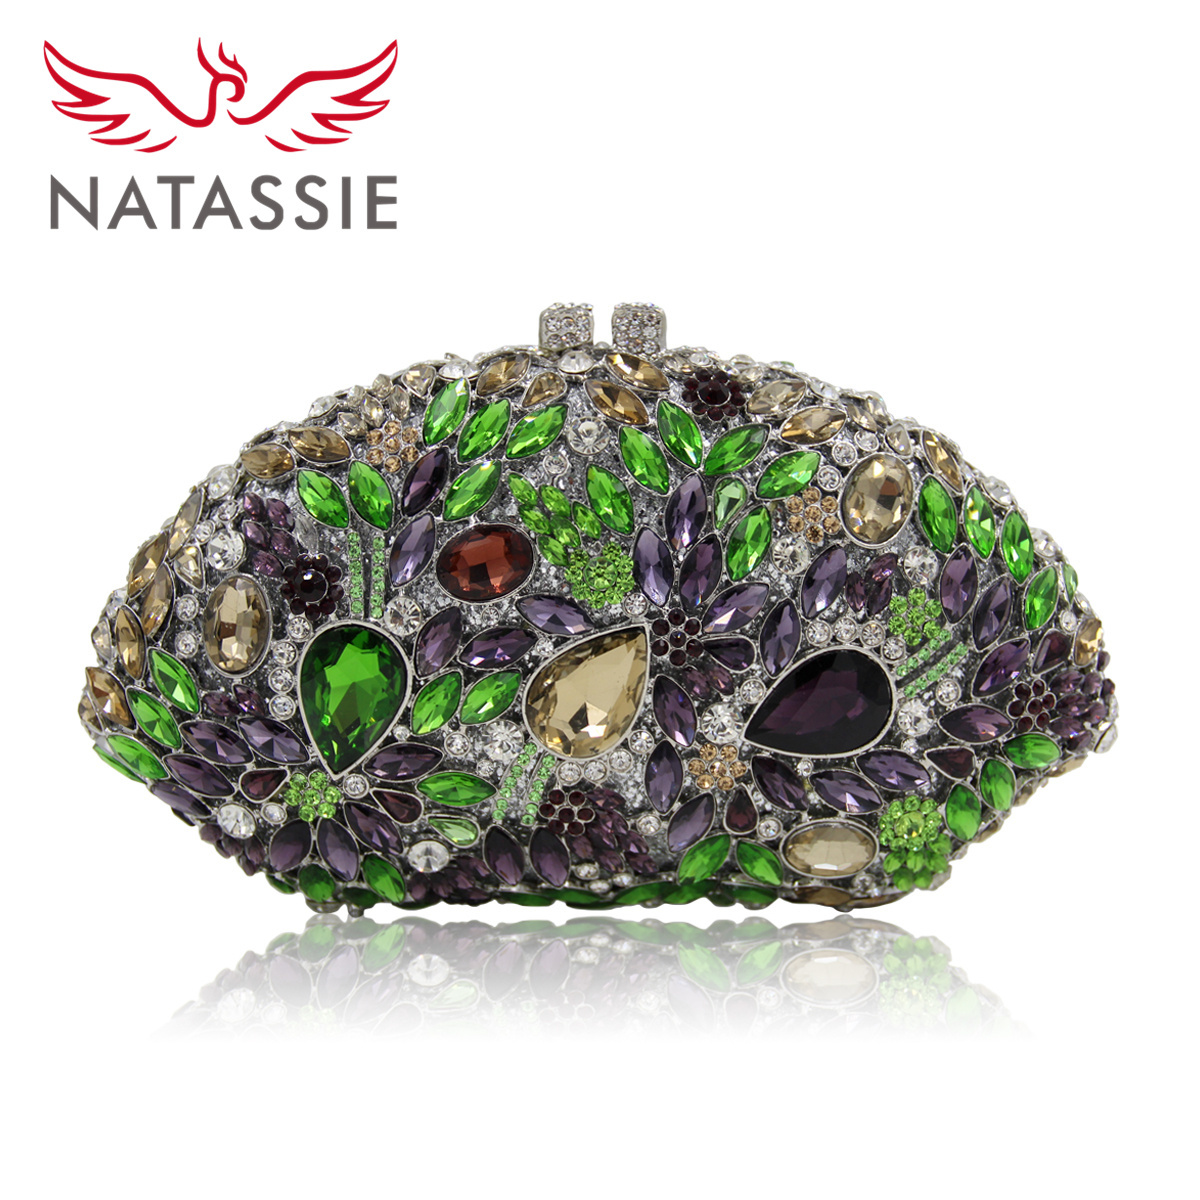 Natassie 2017 New Fashion Women Evening Bag Female Crystal Wedding Clutch Purses Party Bags Ladies Design Colorful Clutches natassie new design luxury crystal clutch women evening bag gold red ladies wedding banquet party purses good quality